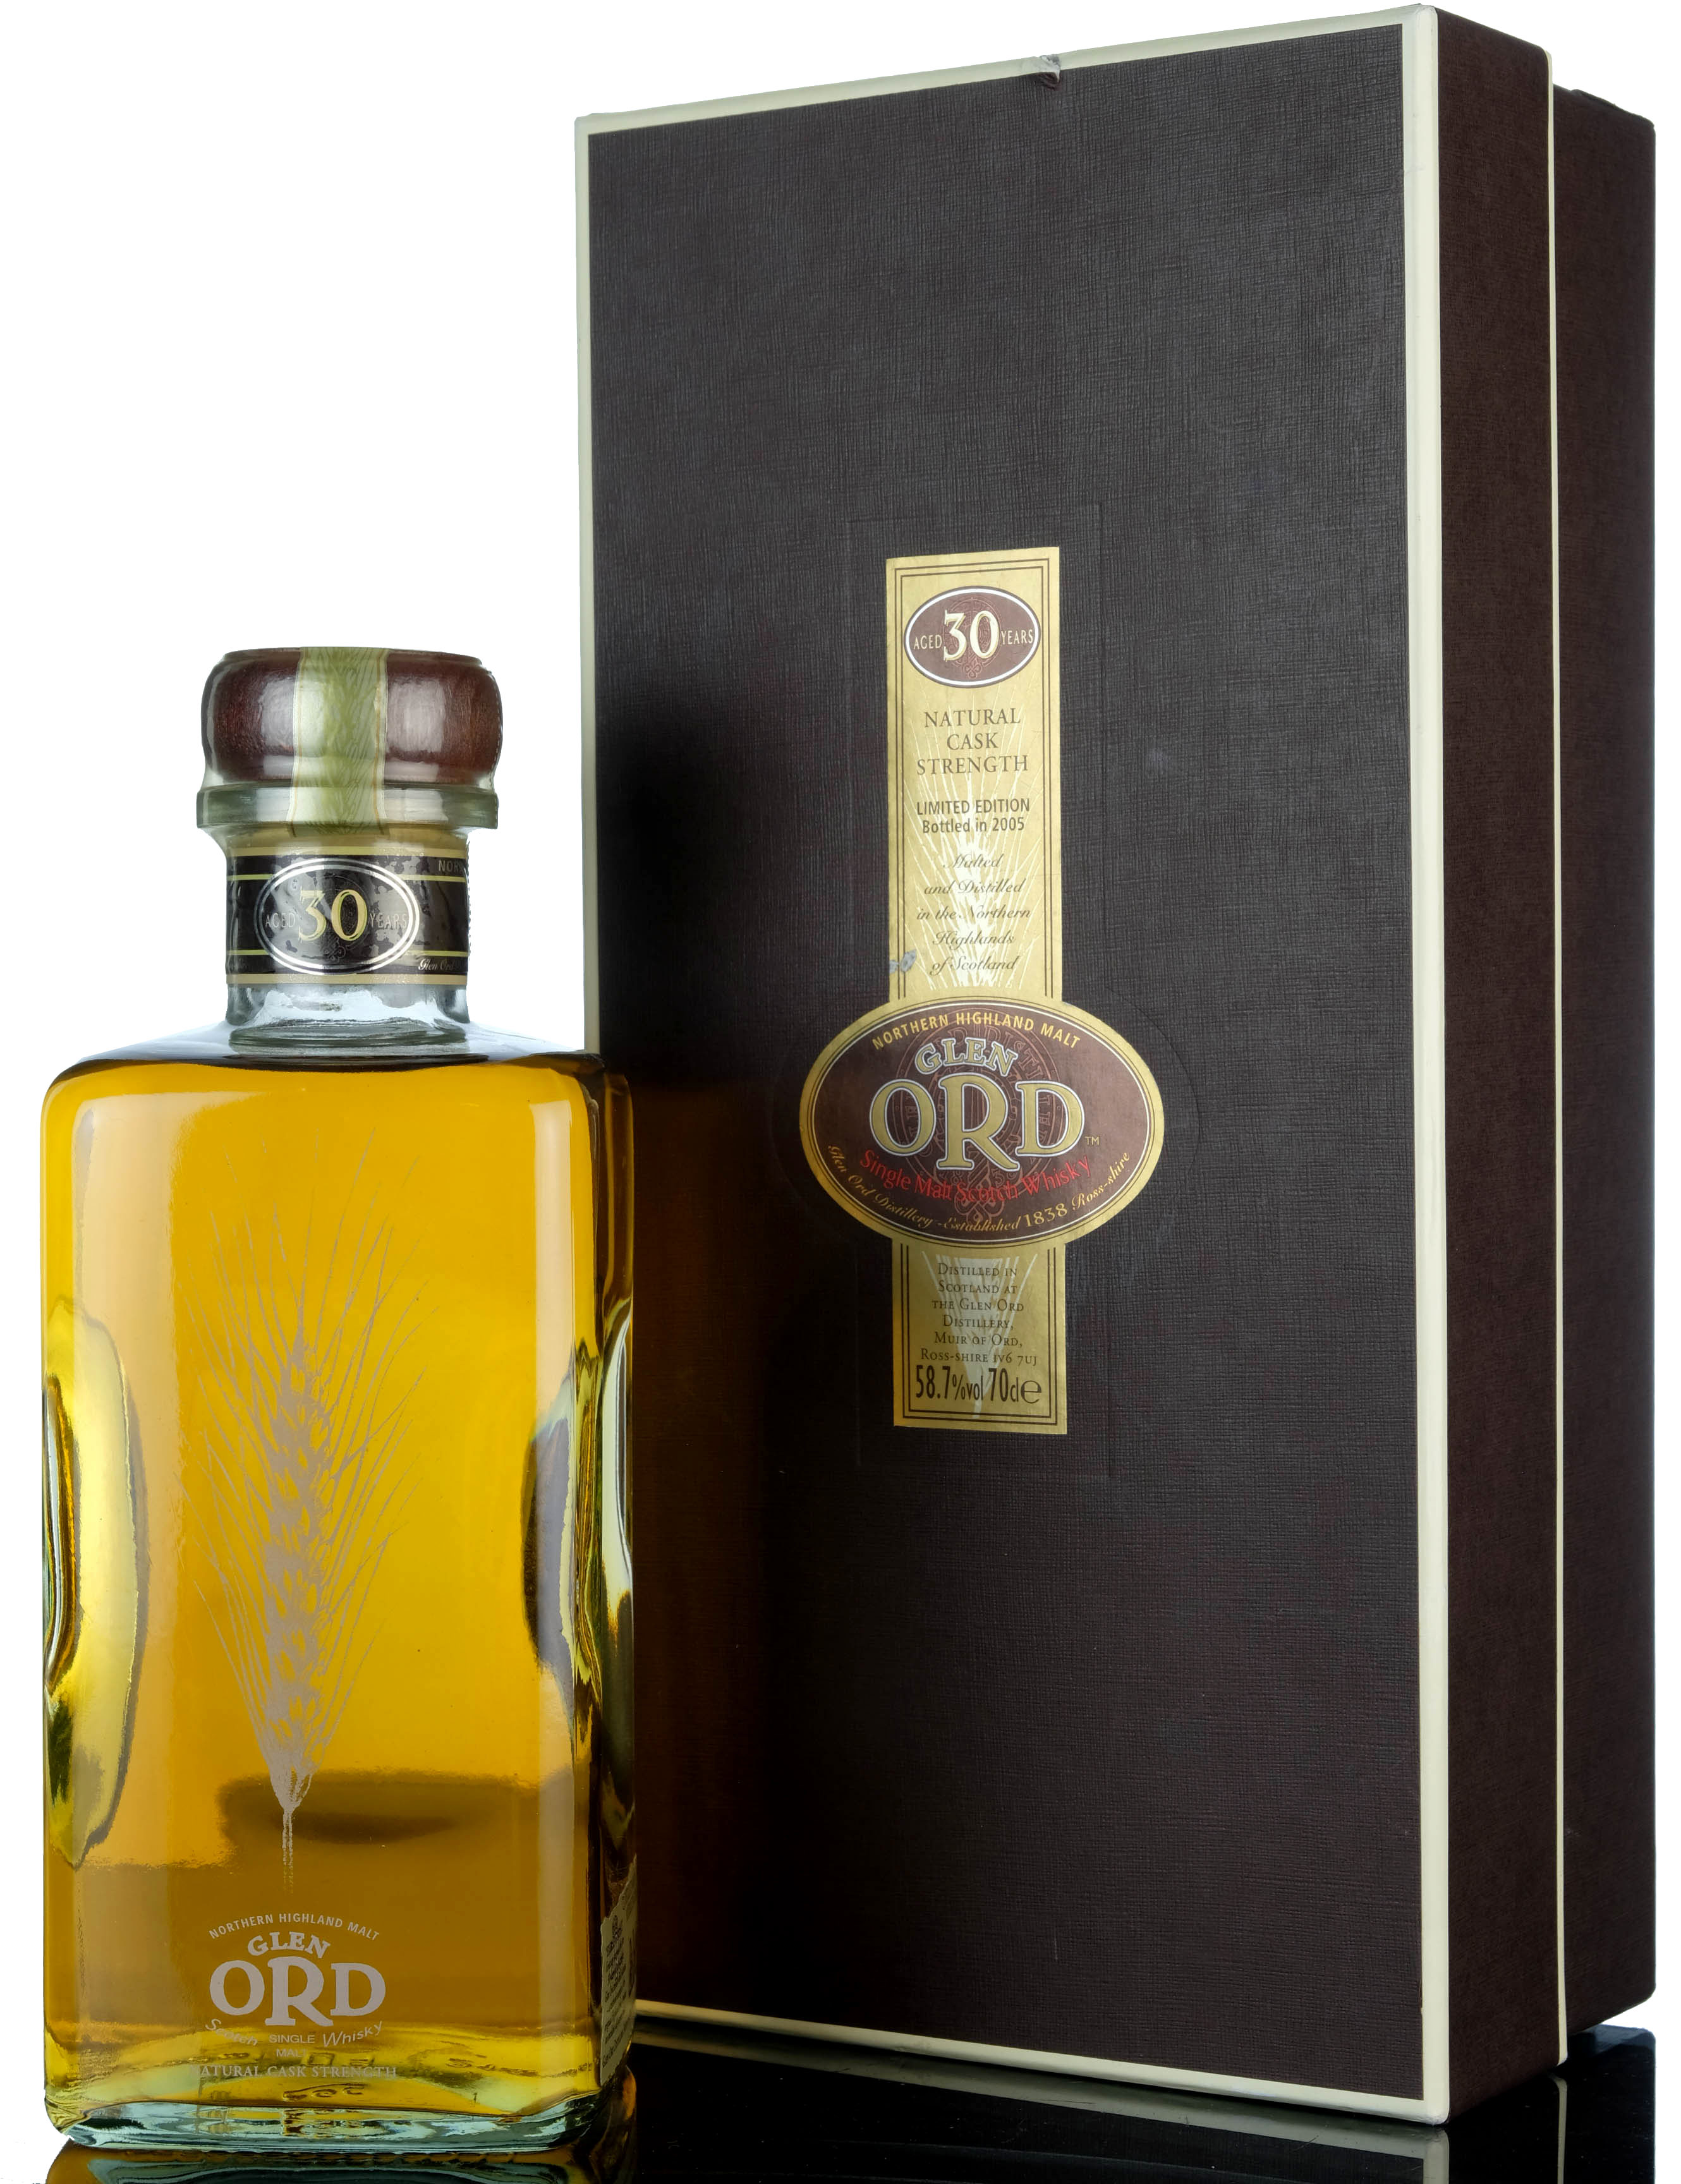 glen ord 30 year old - 2005 special release